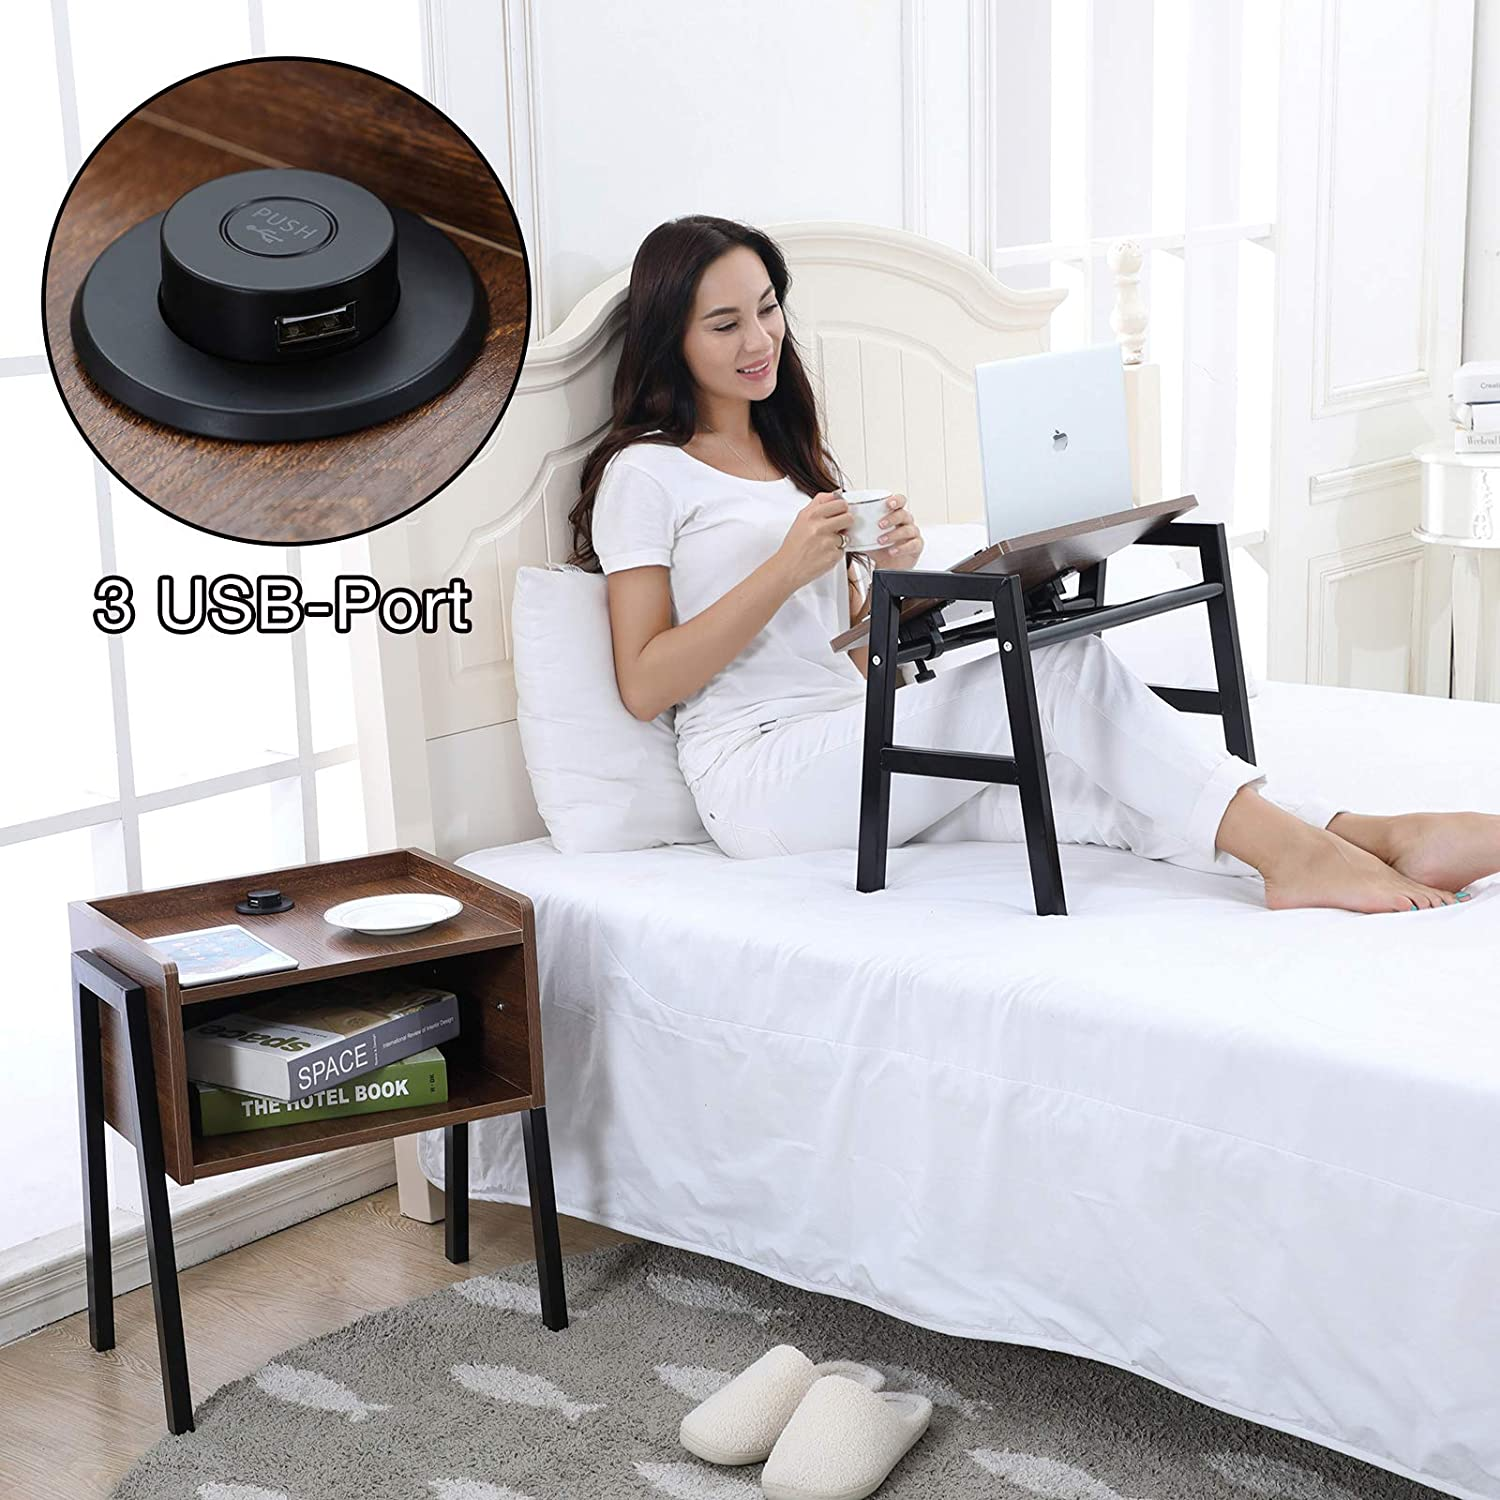 Emall Life Bedside Table with Power Outlet 3 USB-Port Set of 2 Functional Overbed Table Angle-Adjustable Wooden Nightstand